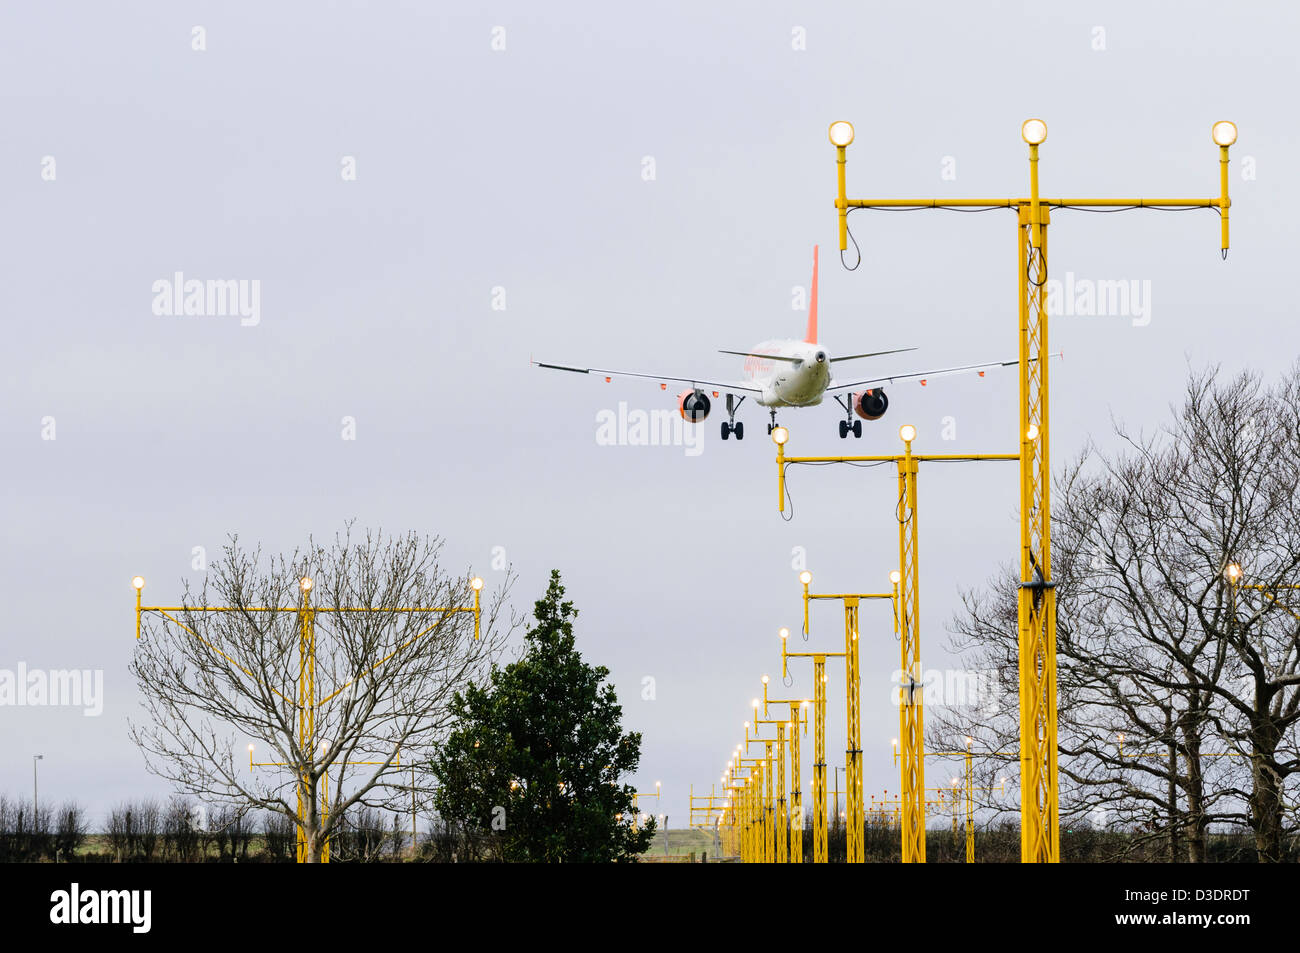 Easyjet plane flying over runway landing lights at an airport - Stock Image